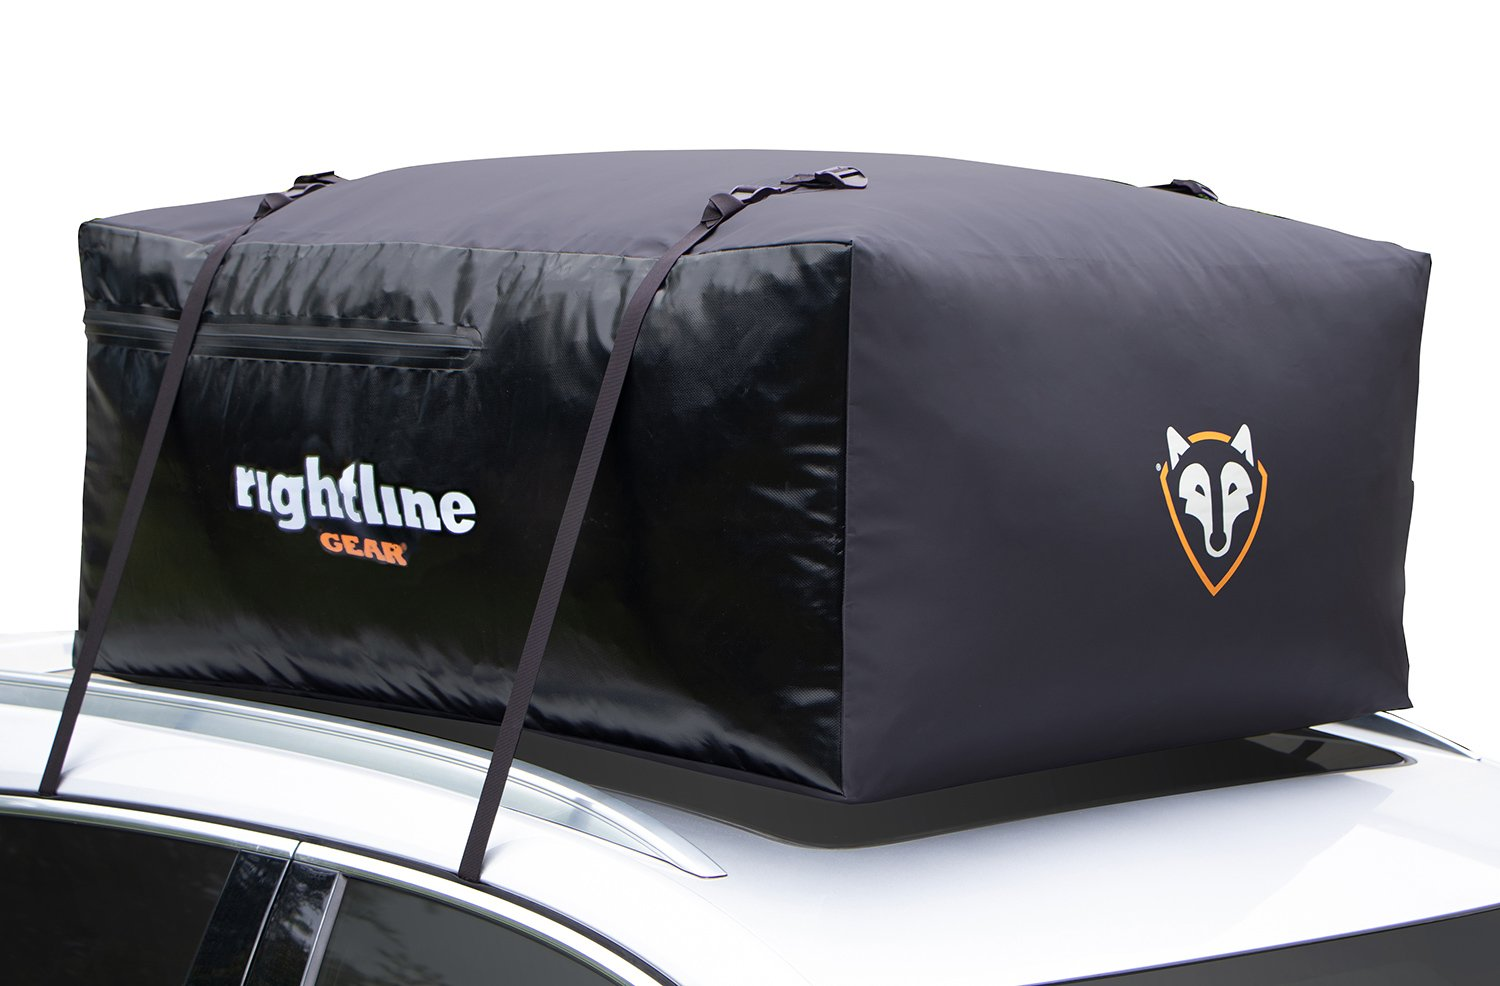 Rooftop Cargo Bag >> Rightline Gear Sport 2 Car Top Carrier - Free Shipping